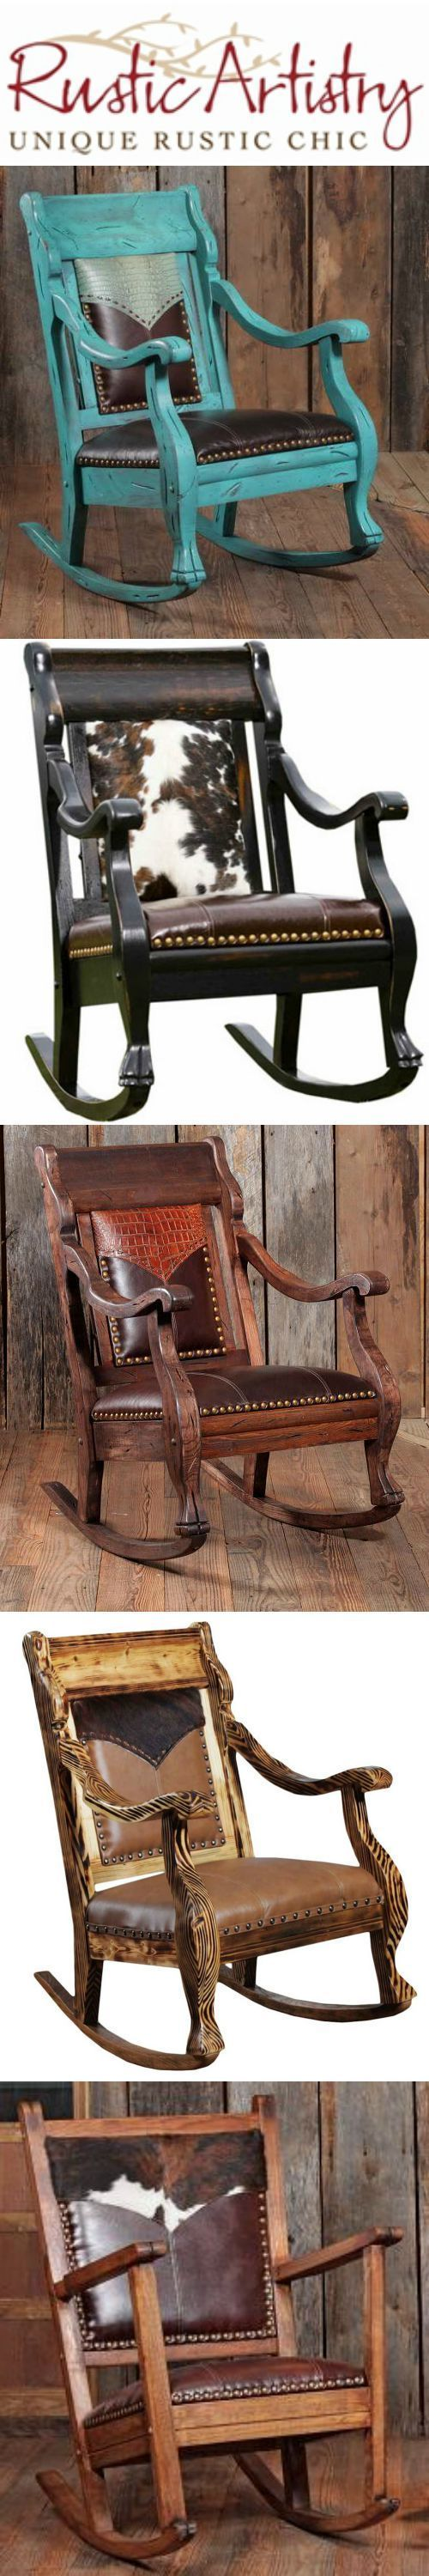 Rockers perfect for the rustic living at the cabin http://rusticartistry.com/product-category/room/rustic-living-room-dining-room-furniture/rockers/